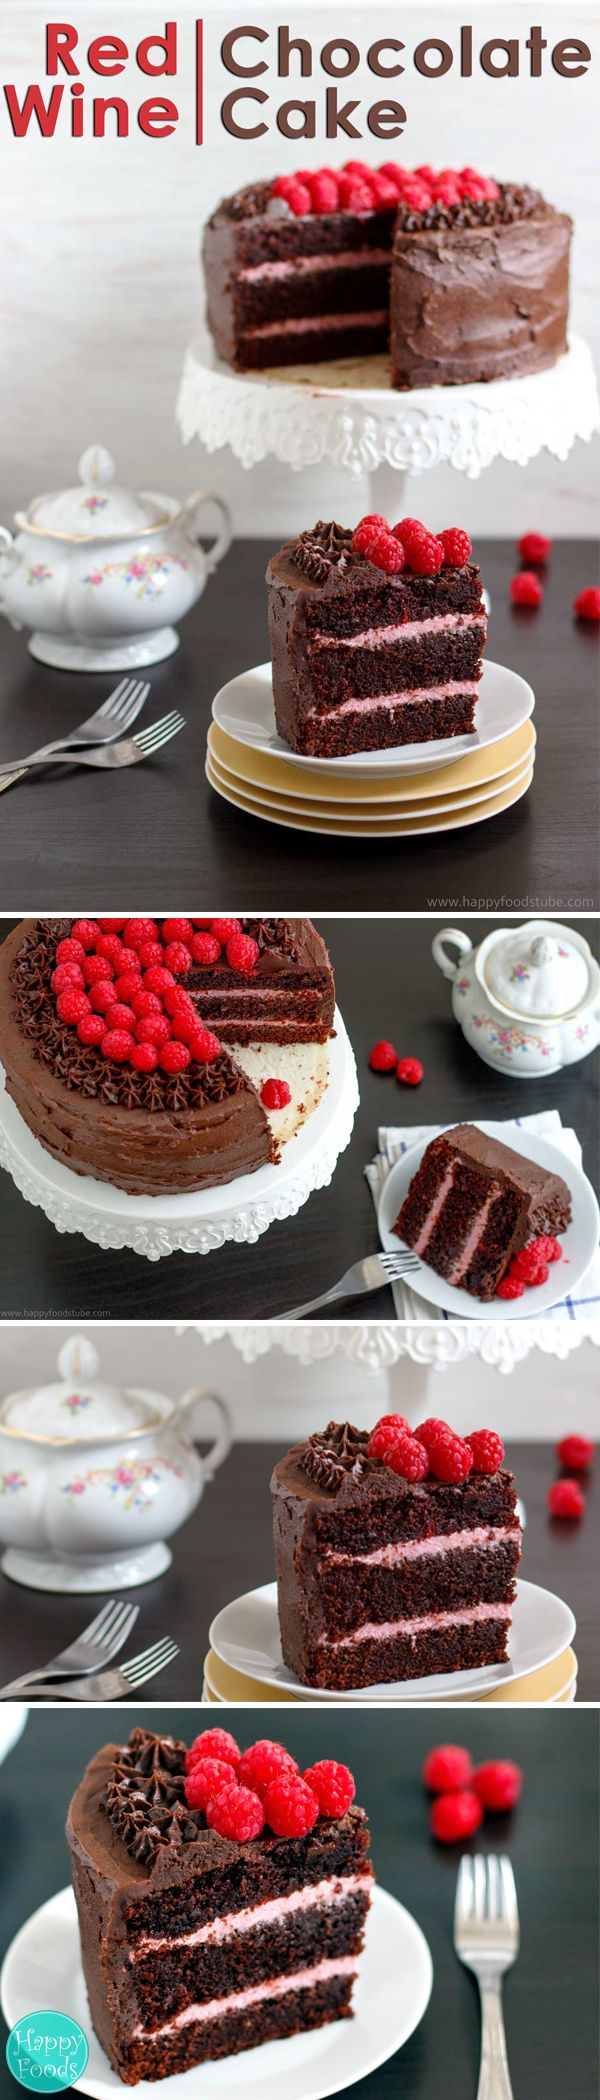 Red Wine Chocolate Raspberry Cake - Ultimate cake recipe. This cake is perfect for birthdays, anniversaries or any other celebration. Dark chocolate, red wine and raspberries ♡ | happyfoodstube.com